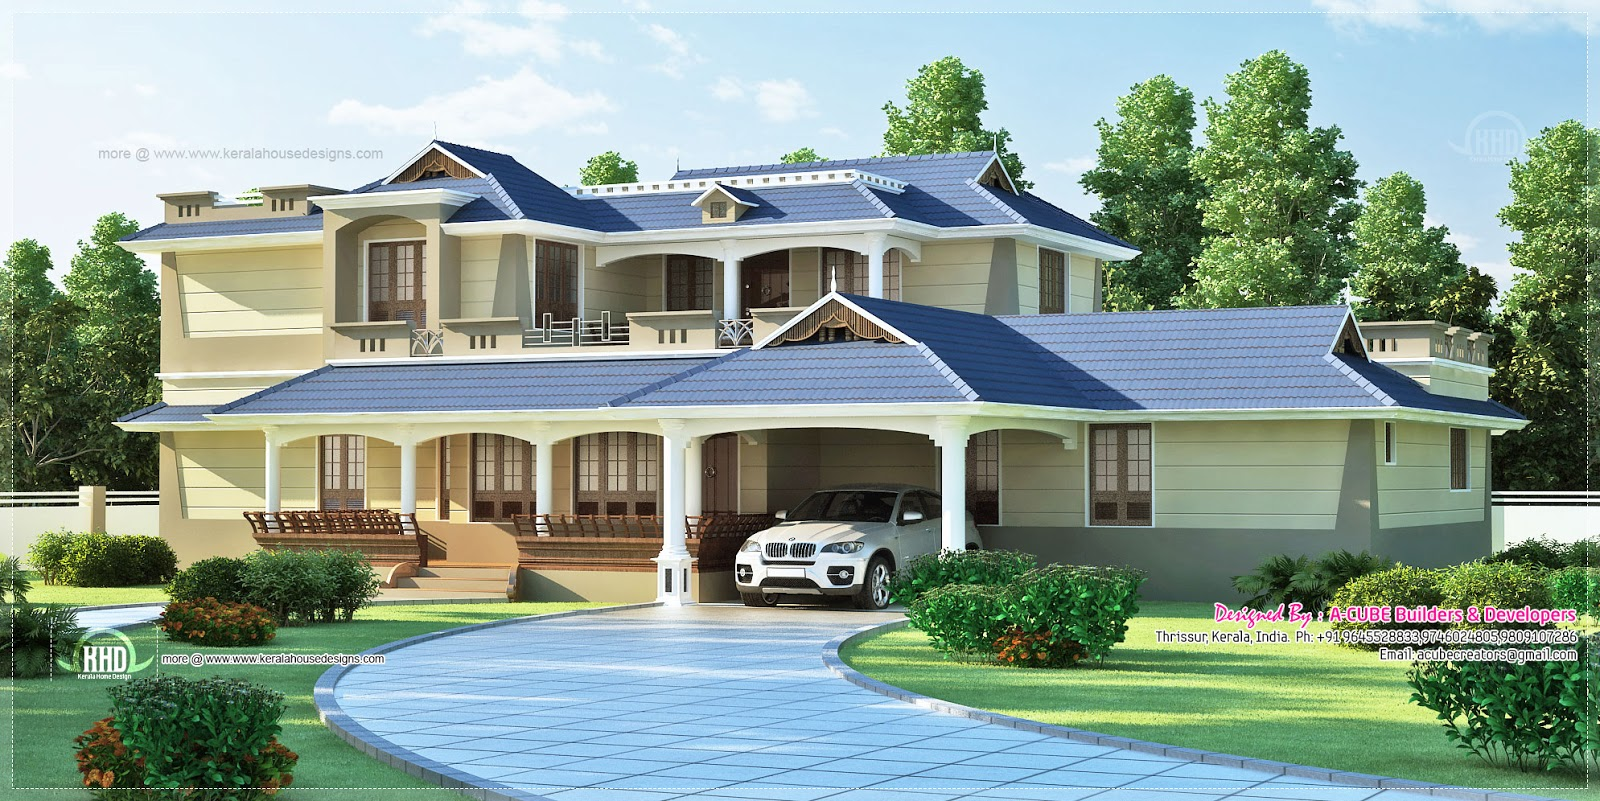 Luxury Sloping Roof 5 Bedroom Villa Exterior Home Ideas House